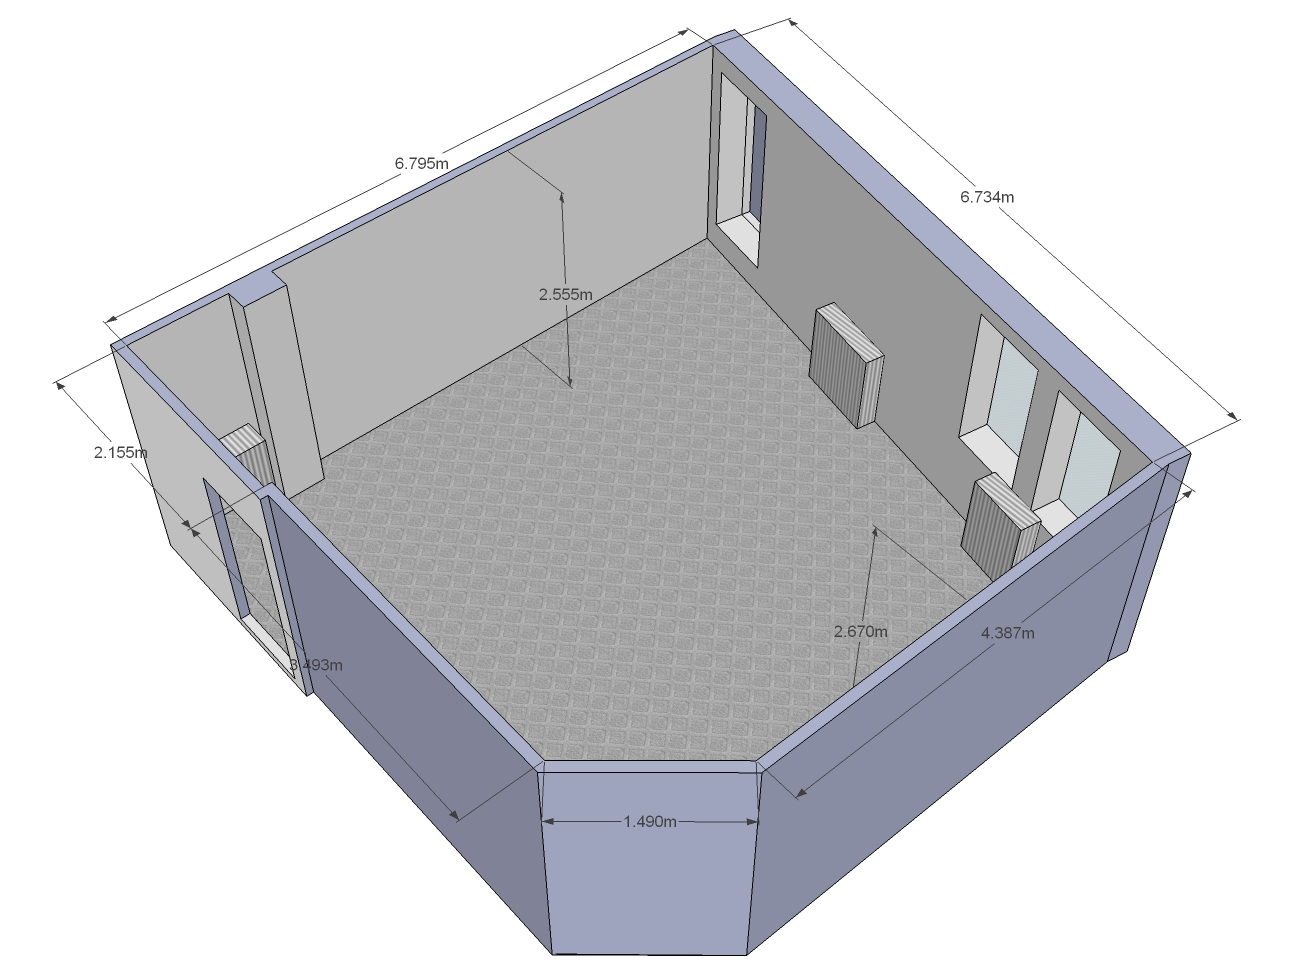 Need Help Treating An Oddly Shaped Room (3D Model Included) Office  ...